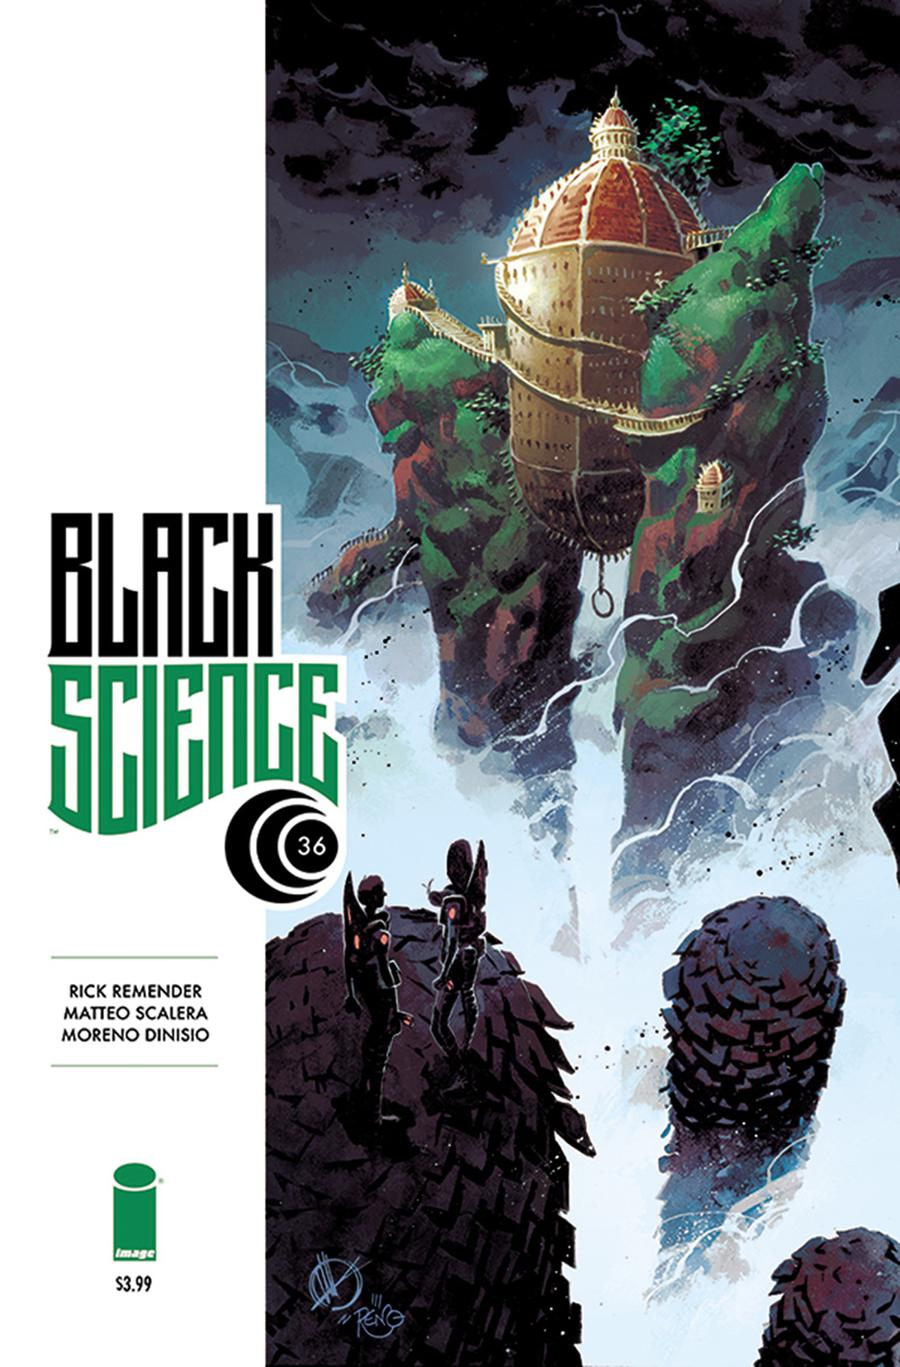 Black Science #36 Cover A Regular Matteo Scalera & Moreno Dinisio Cover